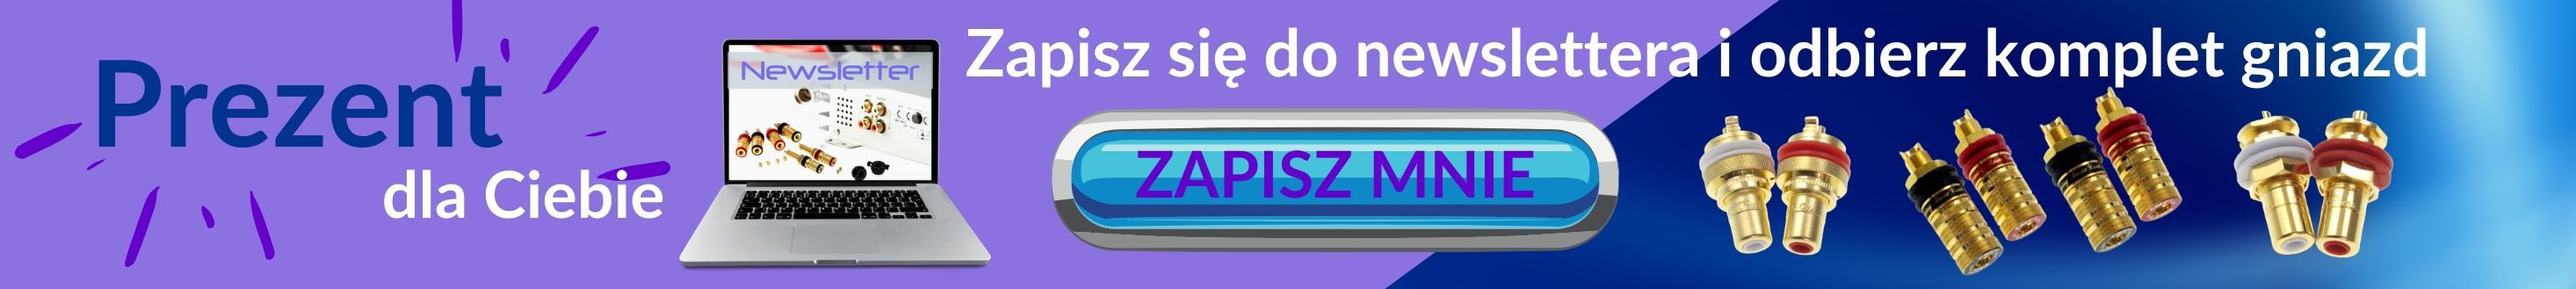 Formularz zapisu do newslettera